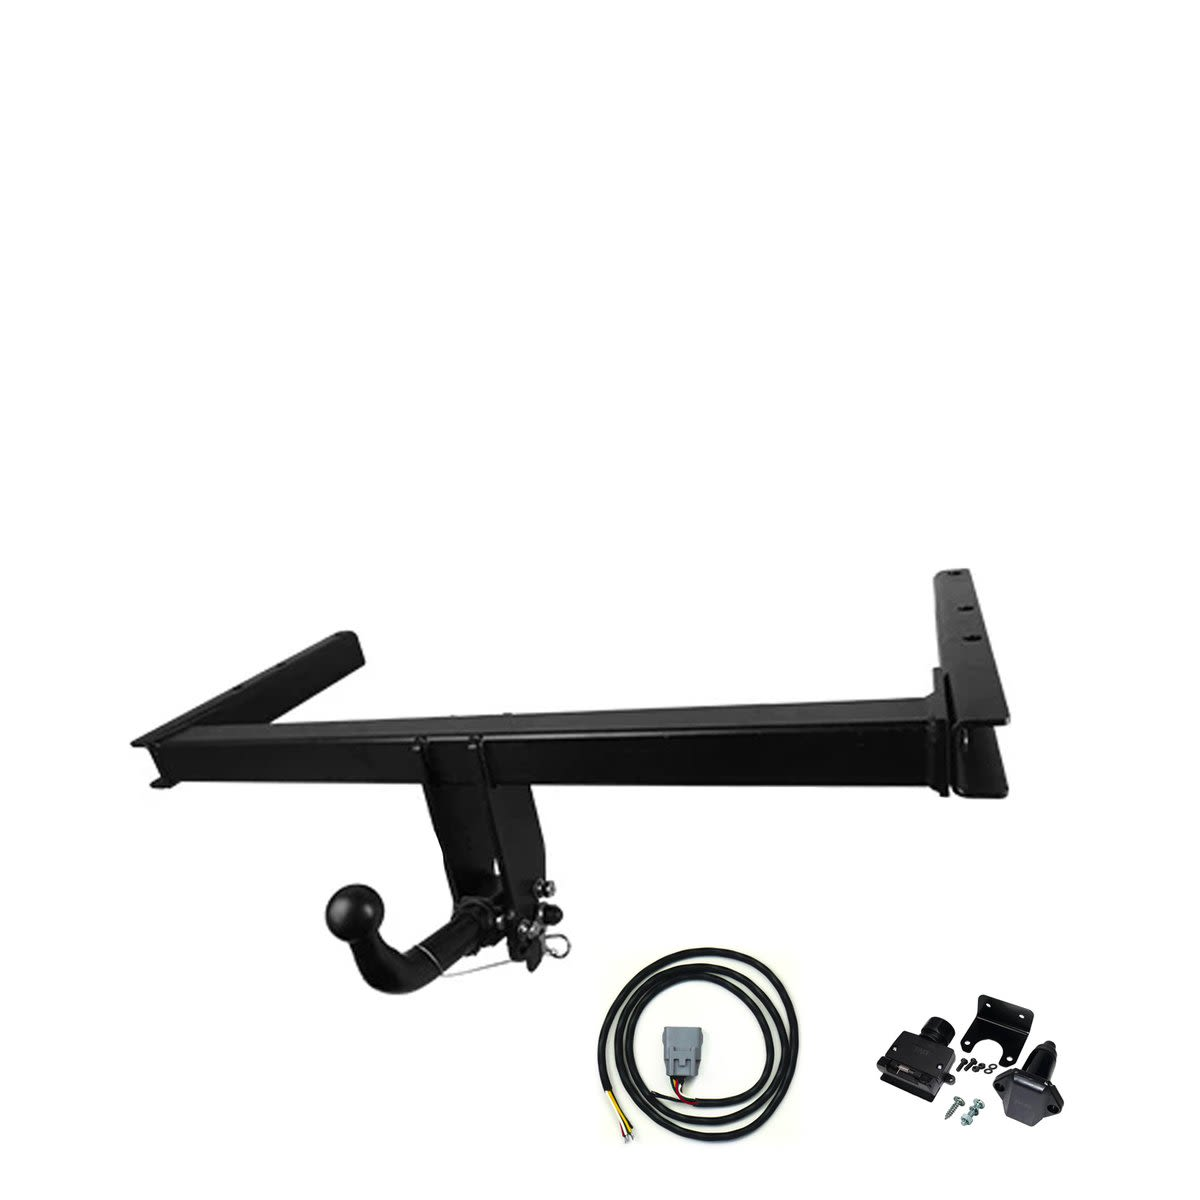 TAG Towbars European Style Tongue to suit Volvo V40 (03/2012 - on)